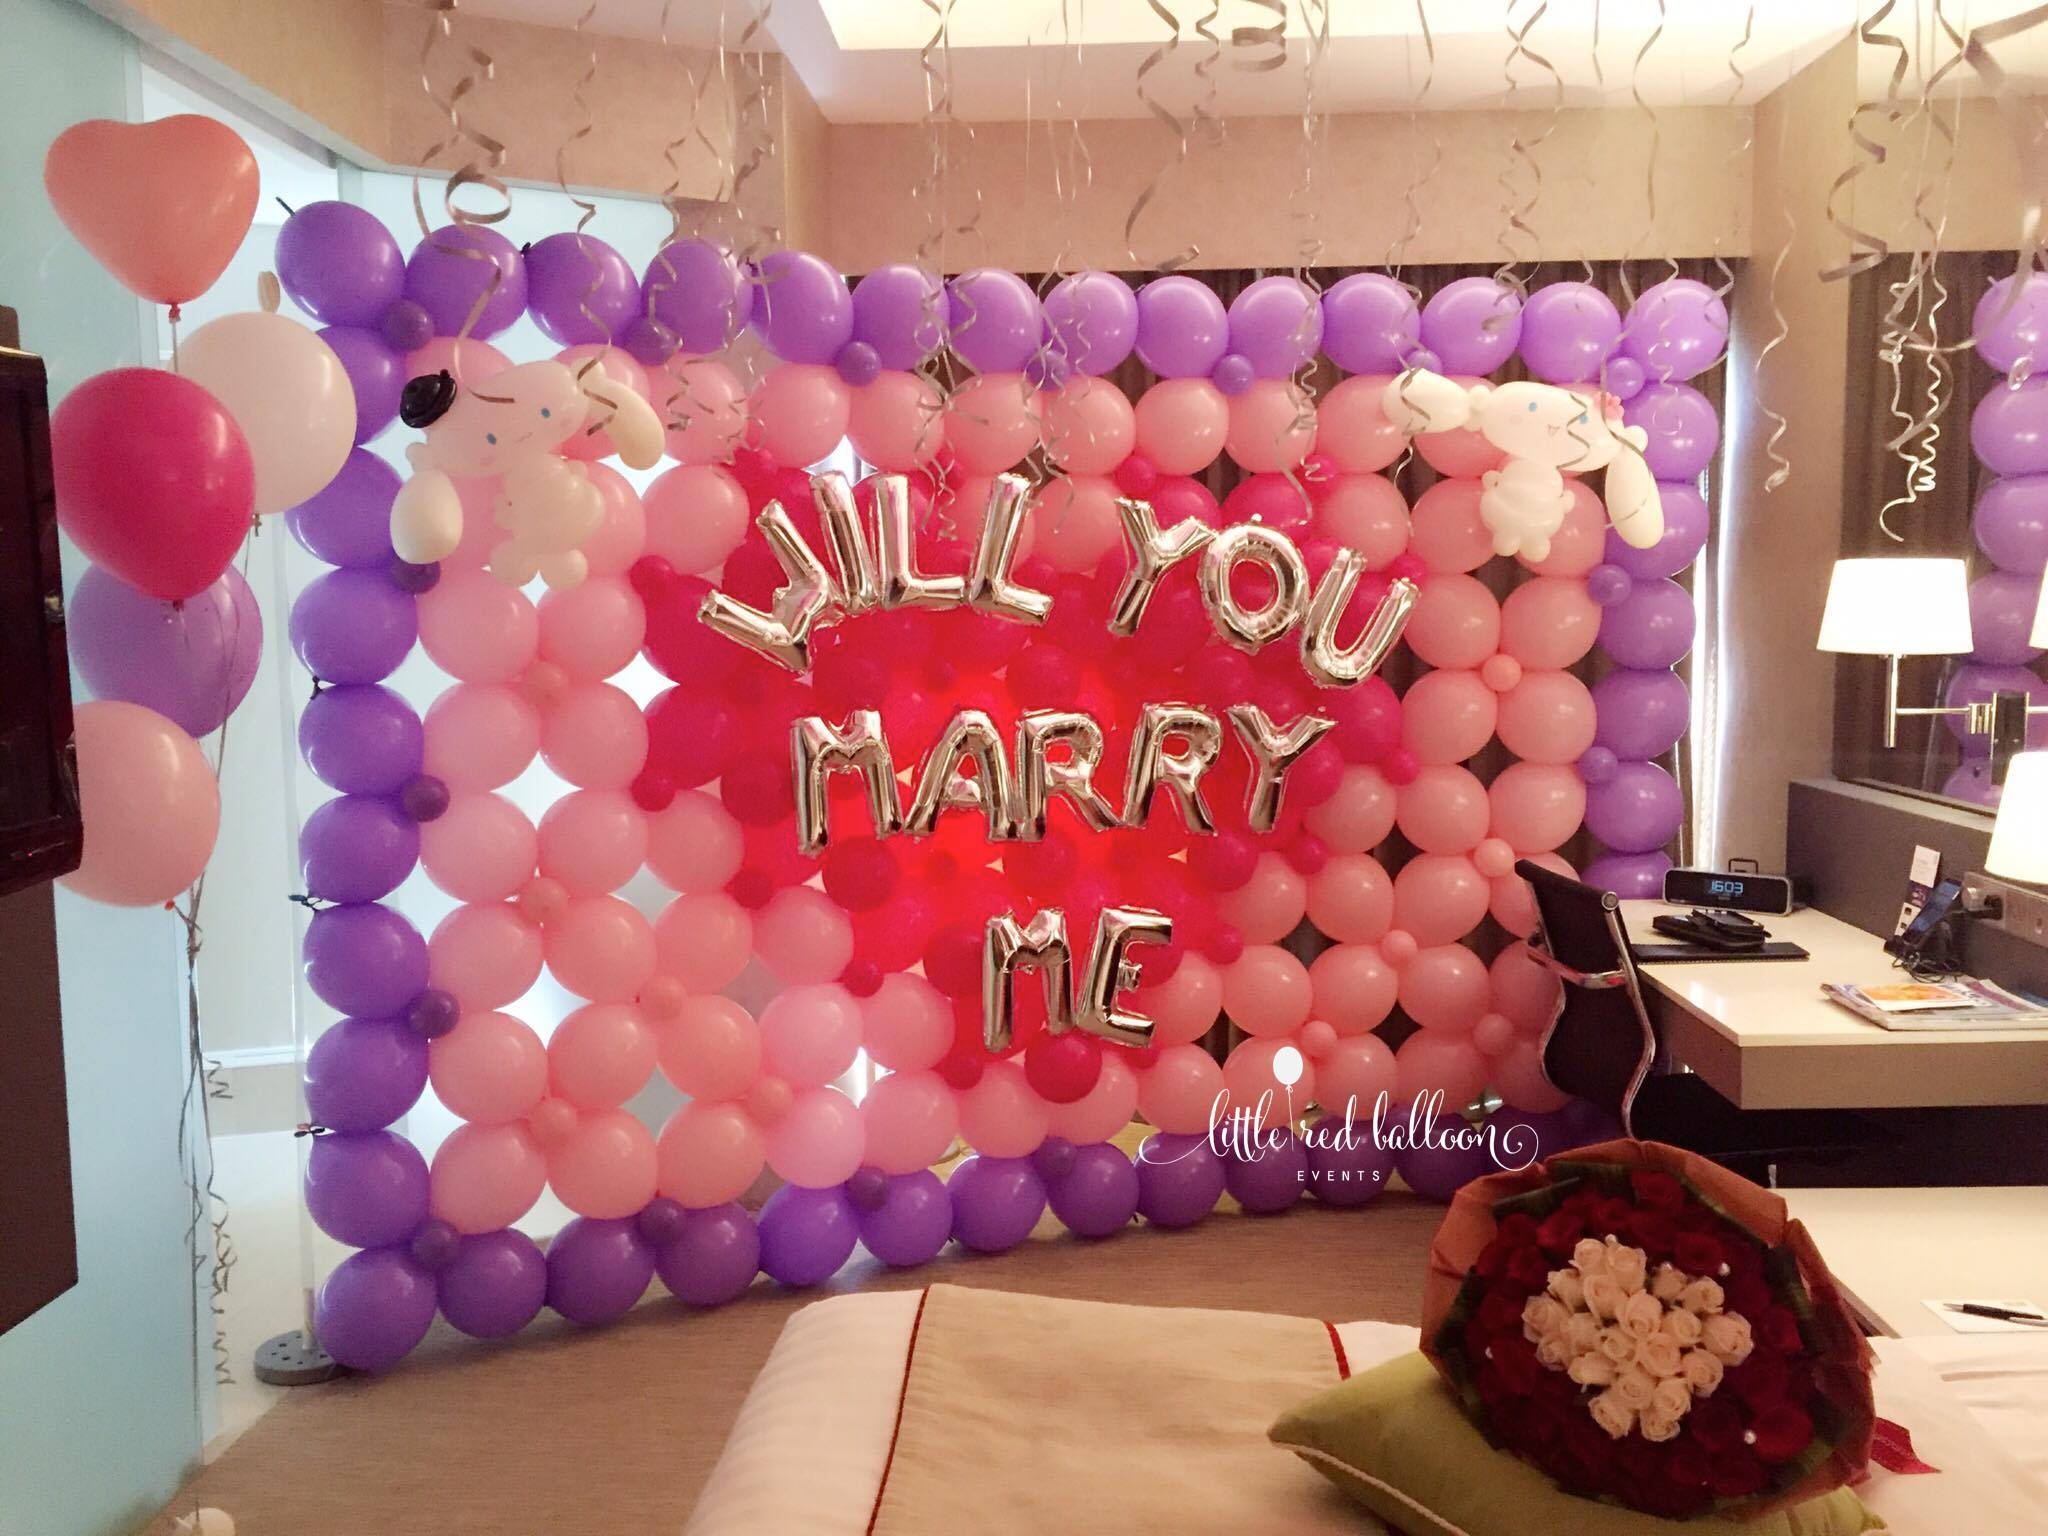 Balloon Backdrops | Little Red Balloon Singapore